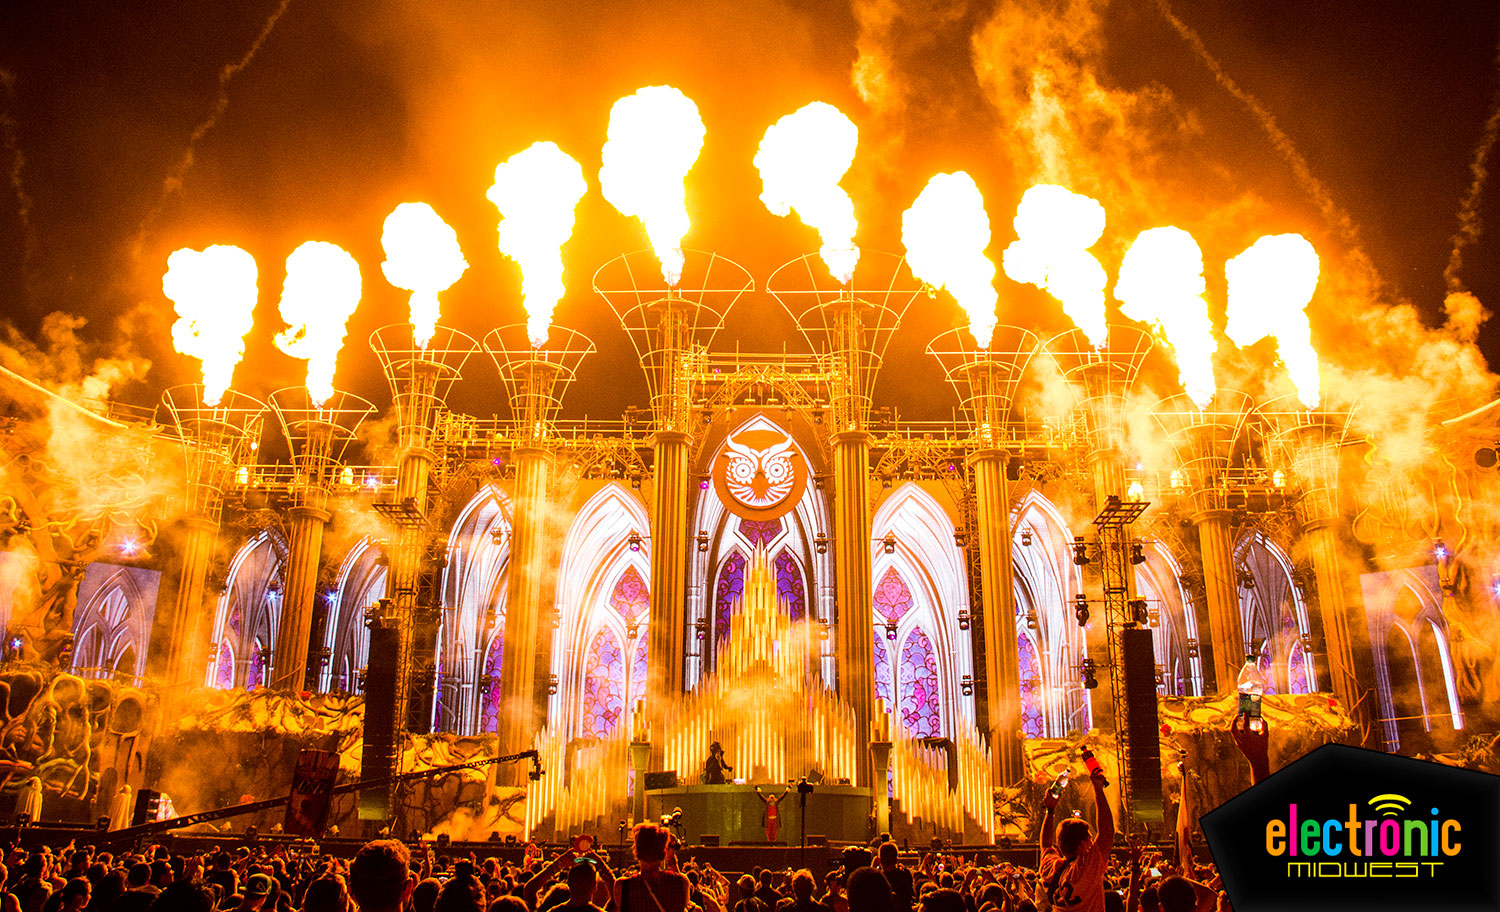 3 Unforgettable Dance Music Stages Edm Maniac